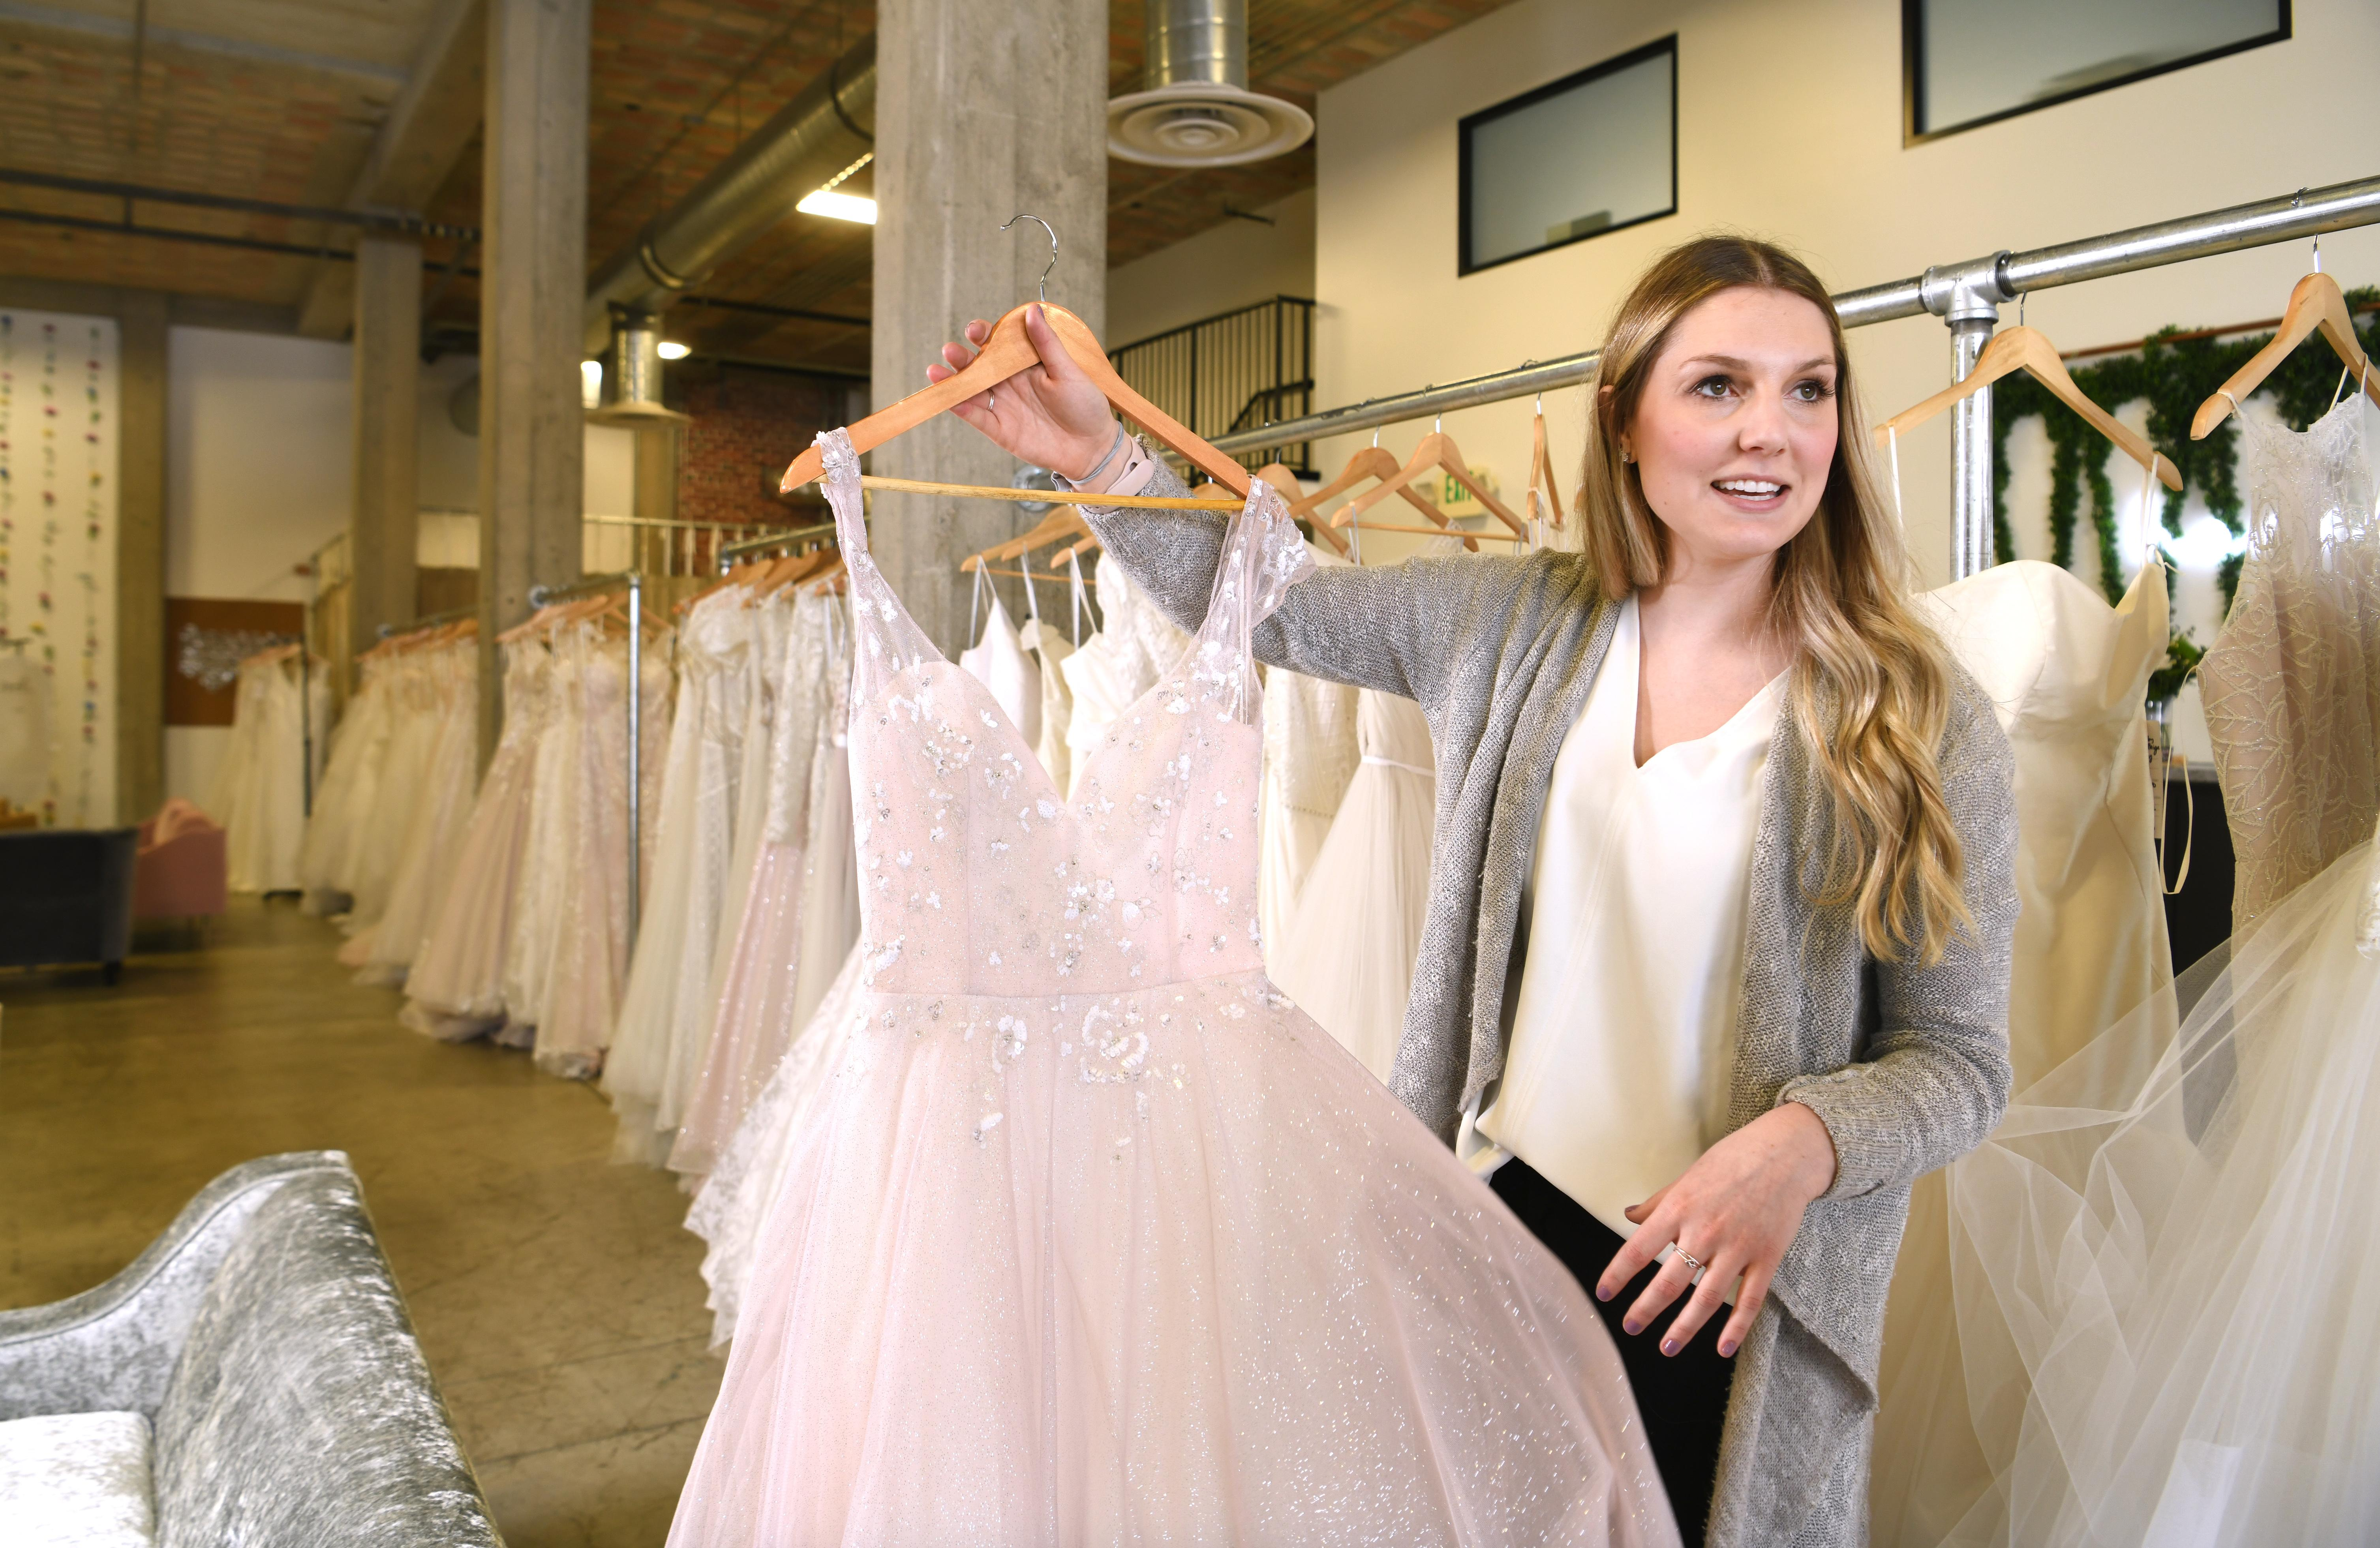 Honest In Ivory Sells Designer Wedding Gowns In Warehouse Space